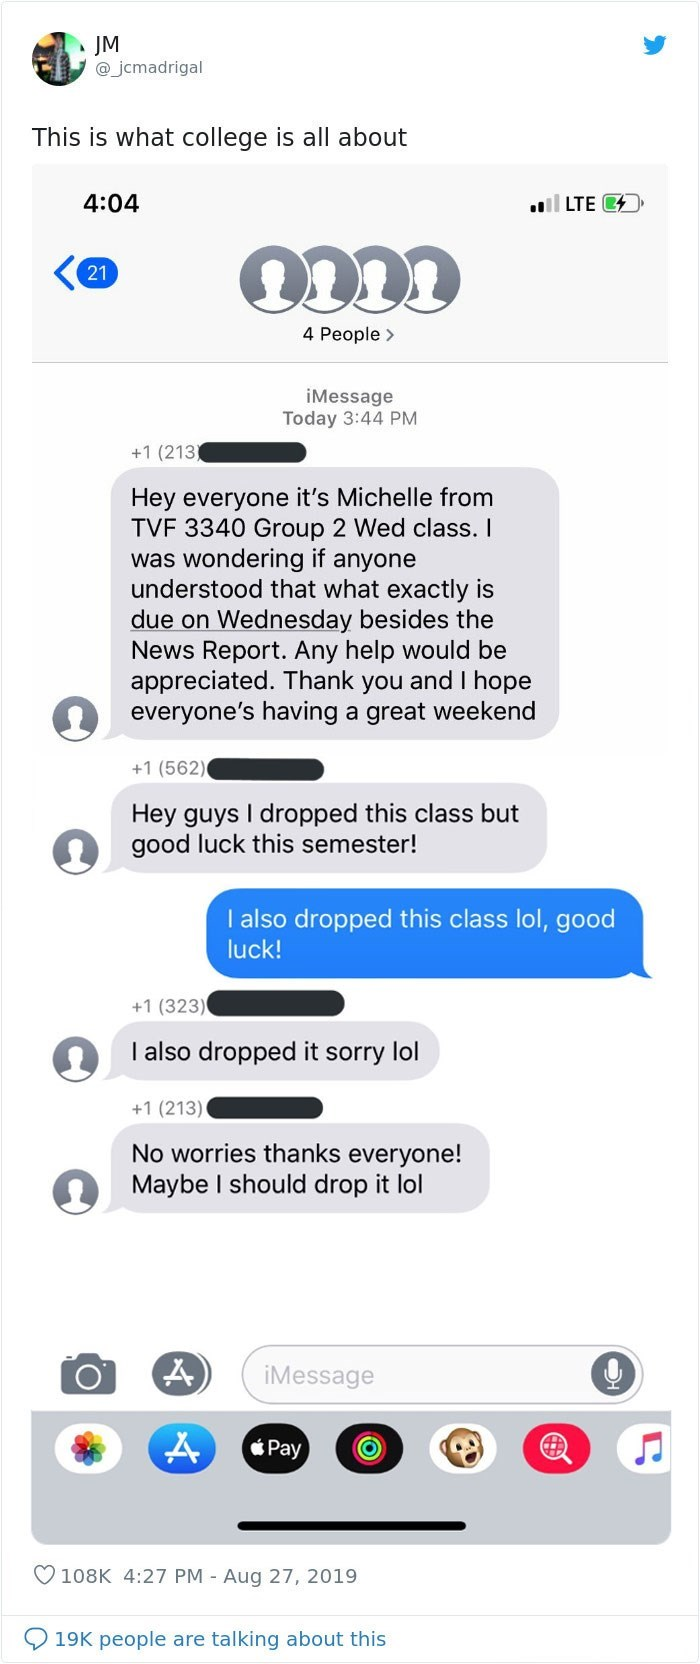 Text - JM @jcmadrigal This is what college is all about 4:04 ail LTE C 21 4 People> iMessage Today 3:44 PM +1 (213 Hey everyone it's Michelle from TVF 3340 Group 2 Wed class. I was wondering if anyone understood that what exactly is due on Wednesday besides the News Report. Any help would be appreciated. Thank you and I hope everyone's having a great weekend +1 (562) Hey guys I dropped this class but good luck this semester! I also dropped this class lol, good luck! +1 (323) I also dropped it so